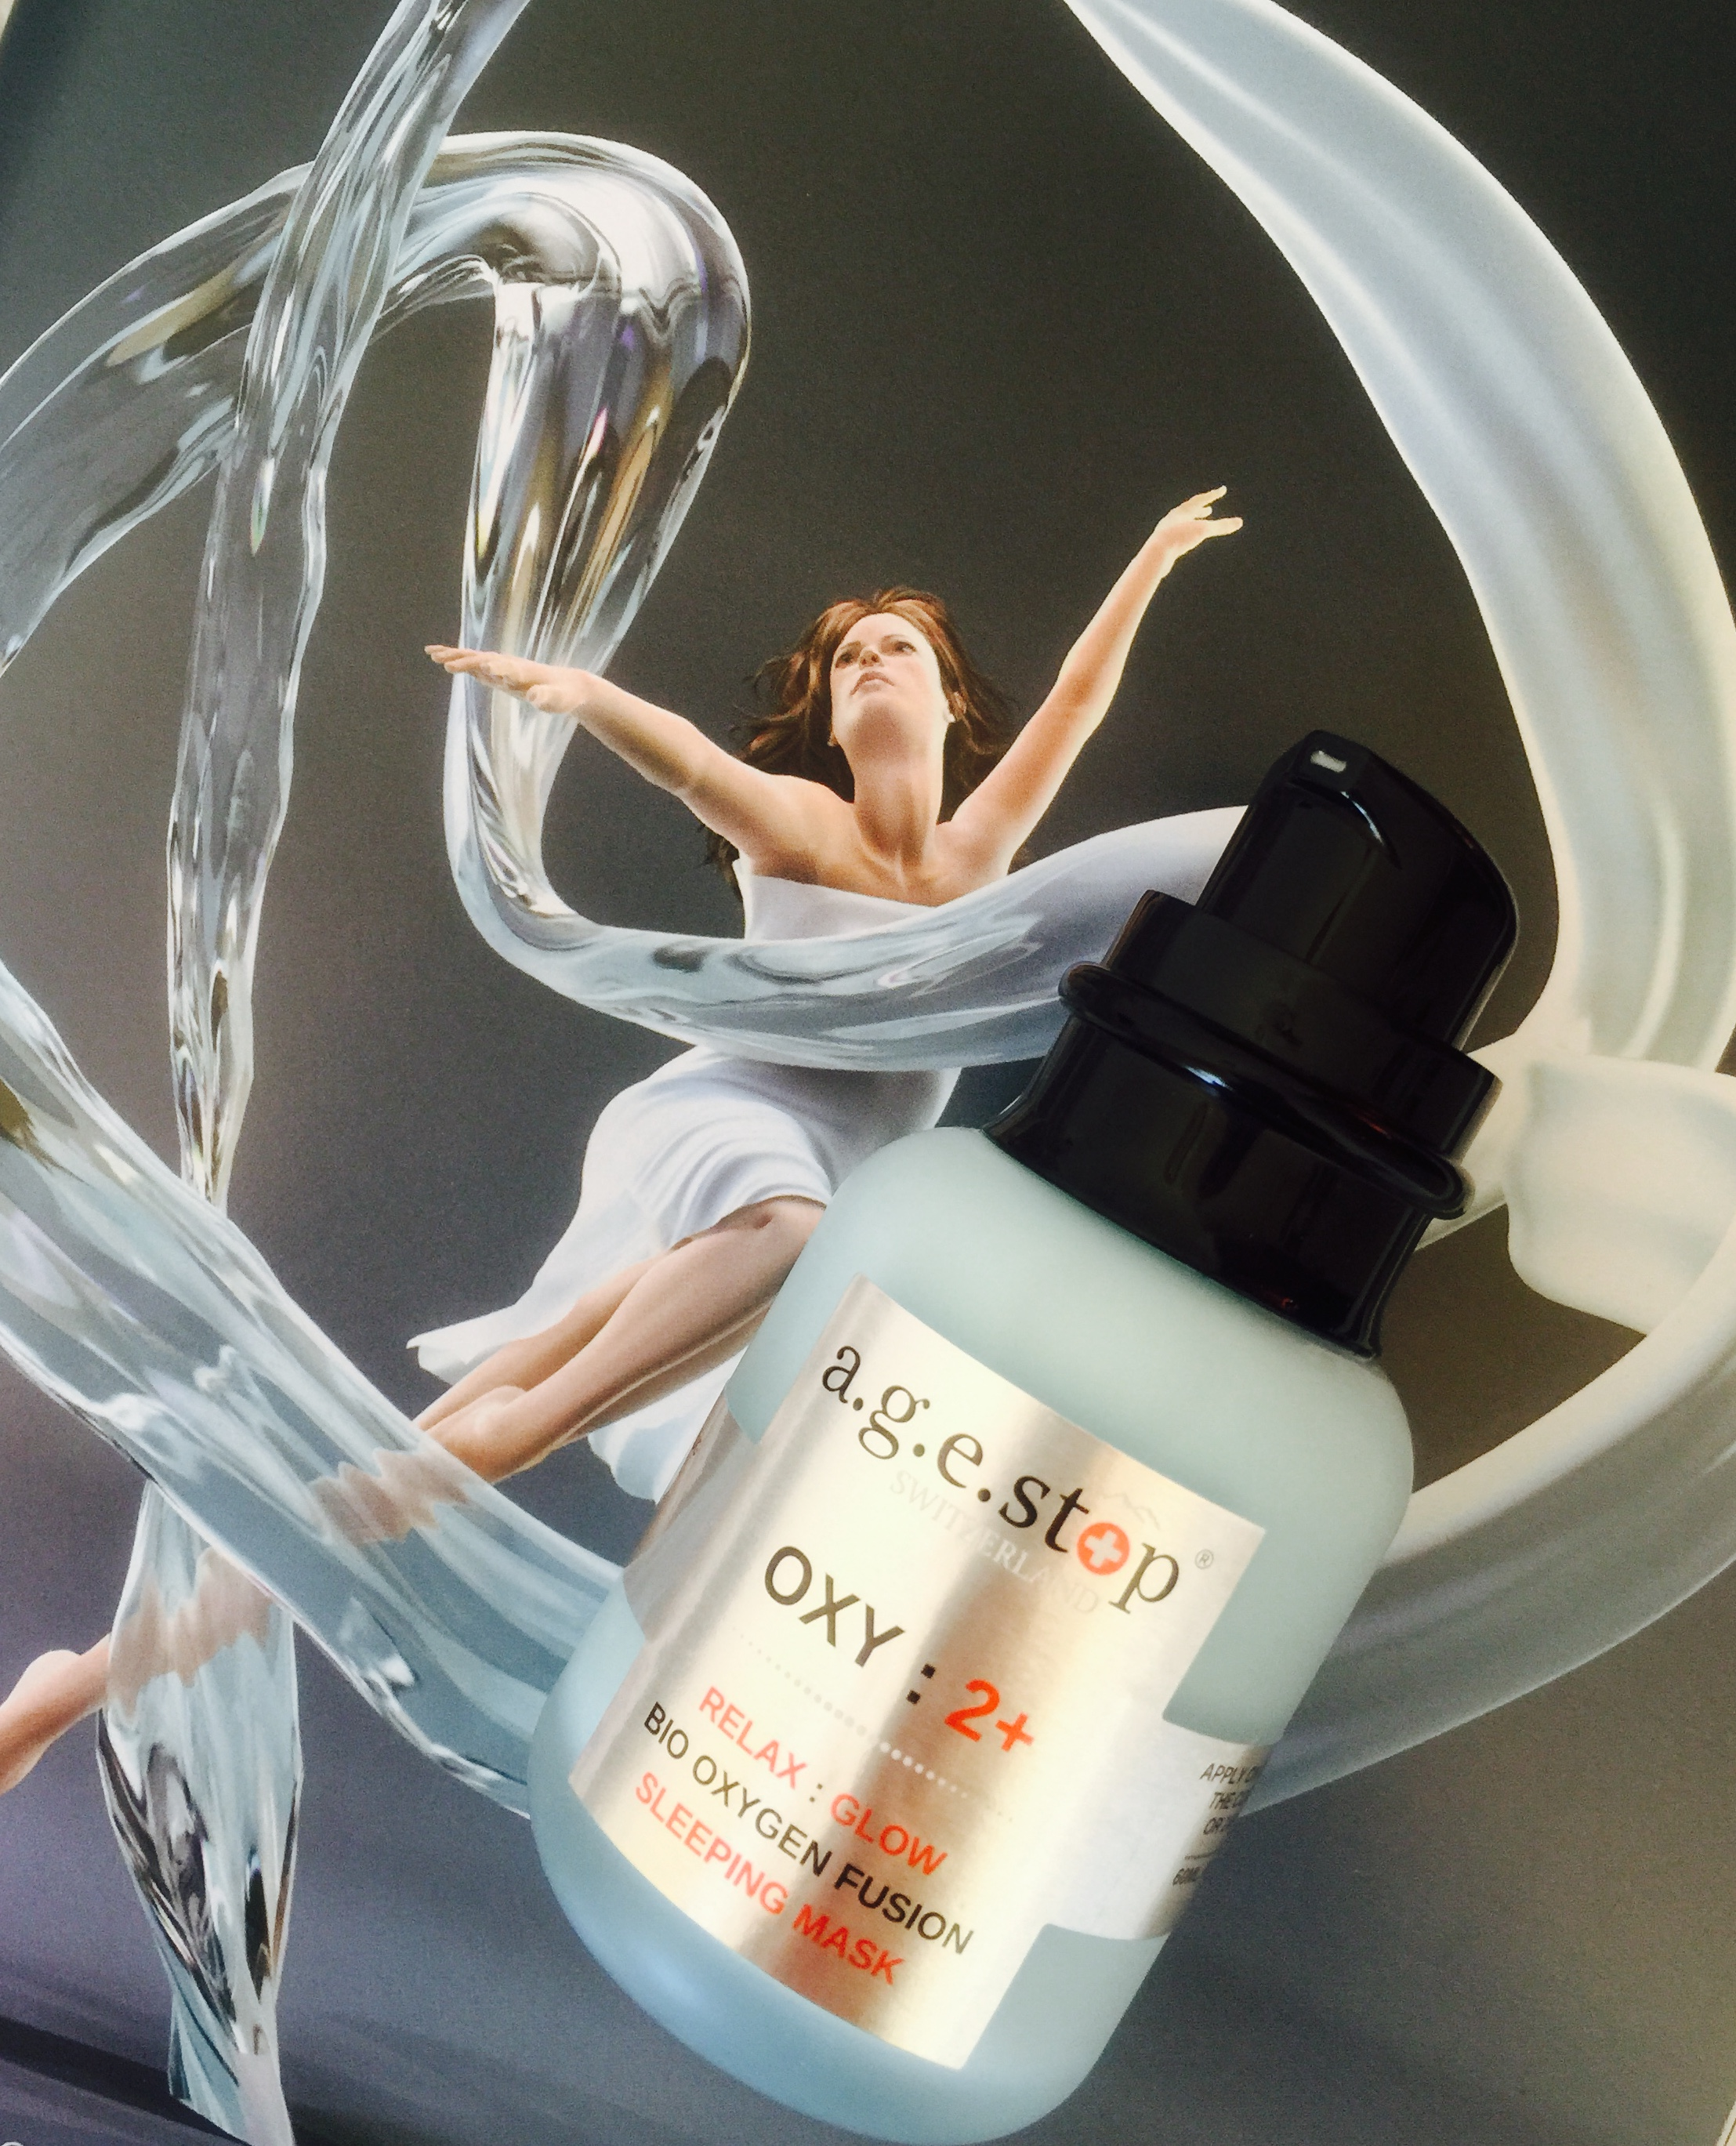 Age Stop Switzerland Creates an Exceptional Range of Skincare Products That Can Repair and Rejuvenate Aging Skin